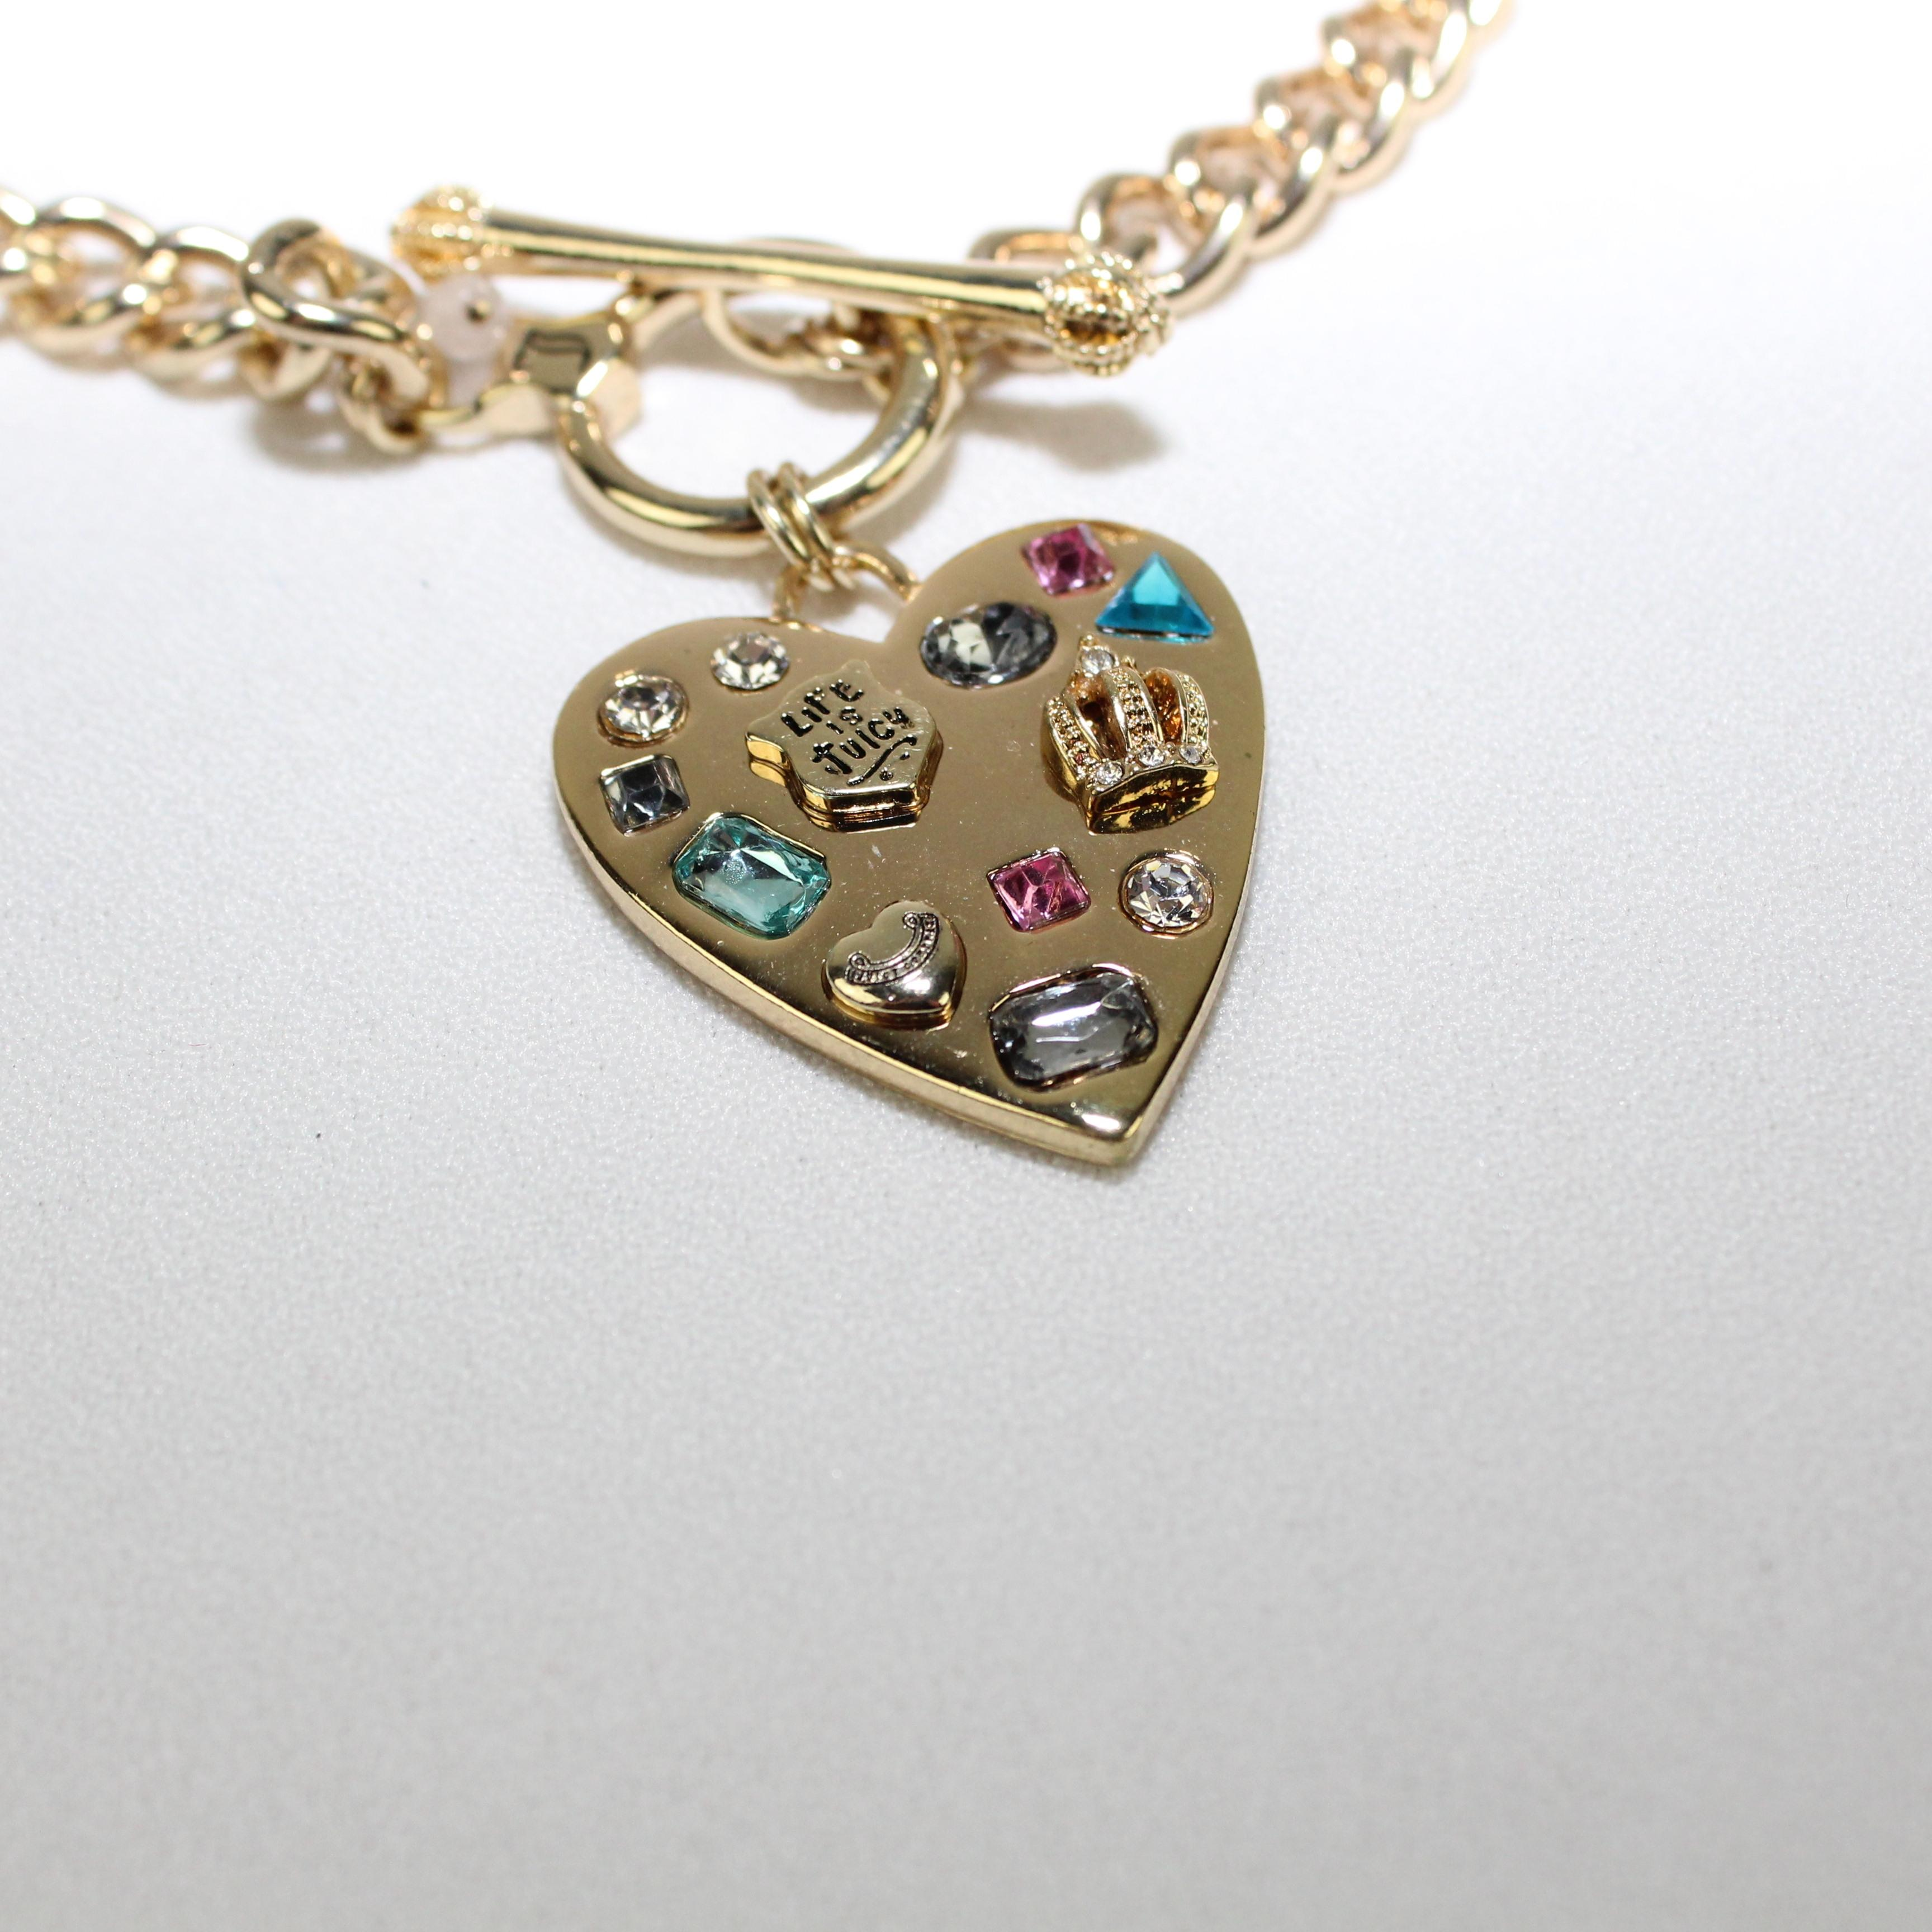 juicy couture heart charm necklace 51 off retail